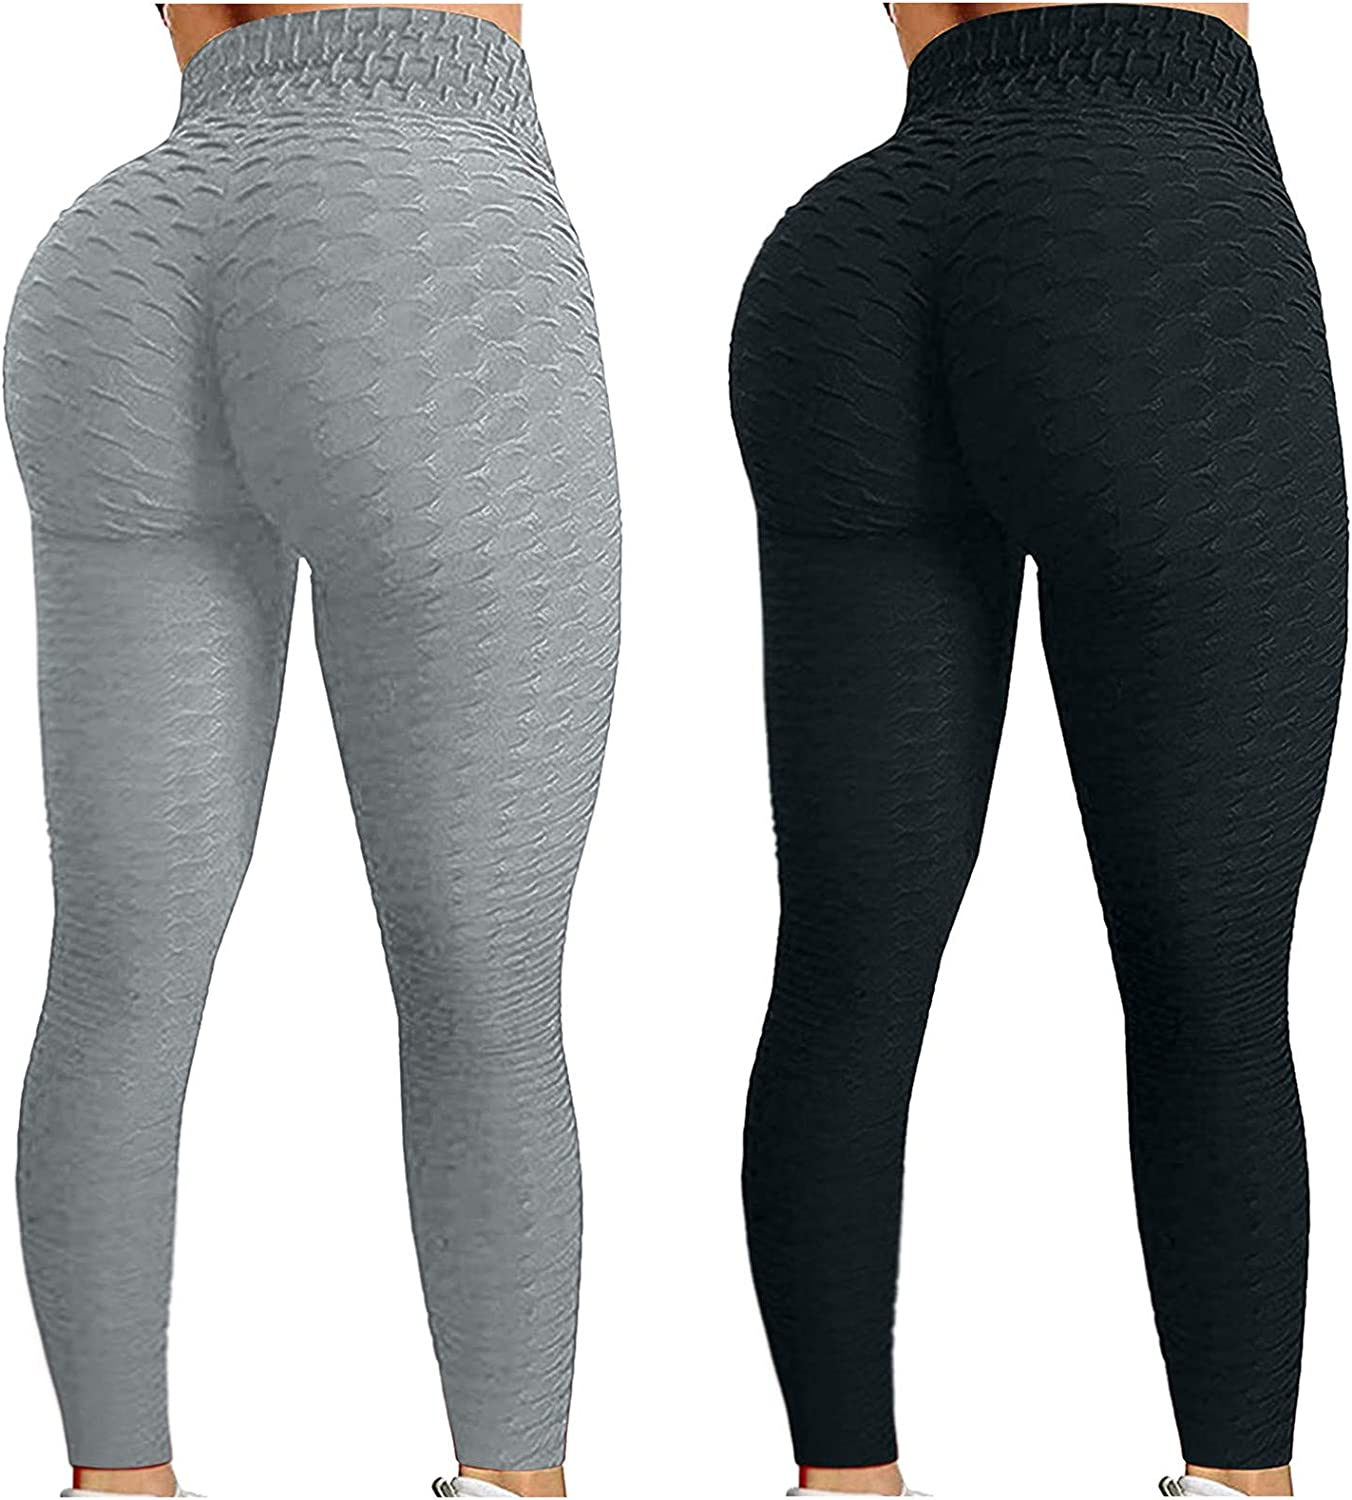 Auwer 2PC Women's High Waist Yoga Pants Tummy Control Workout Ruched Butt Lifting Stretchy Leggings Textured Booty Tights